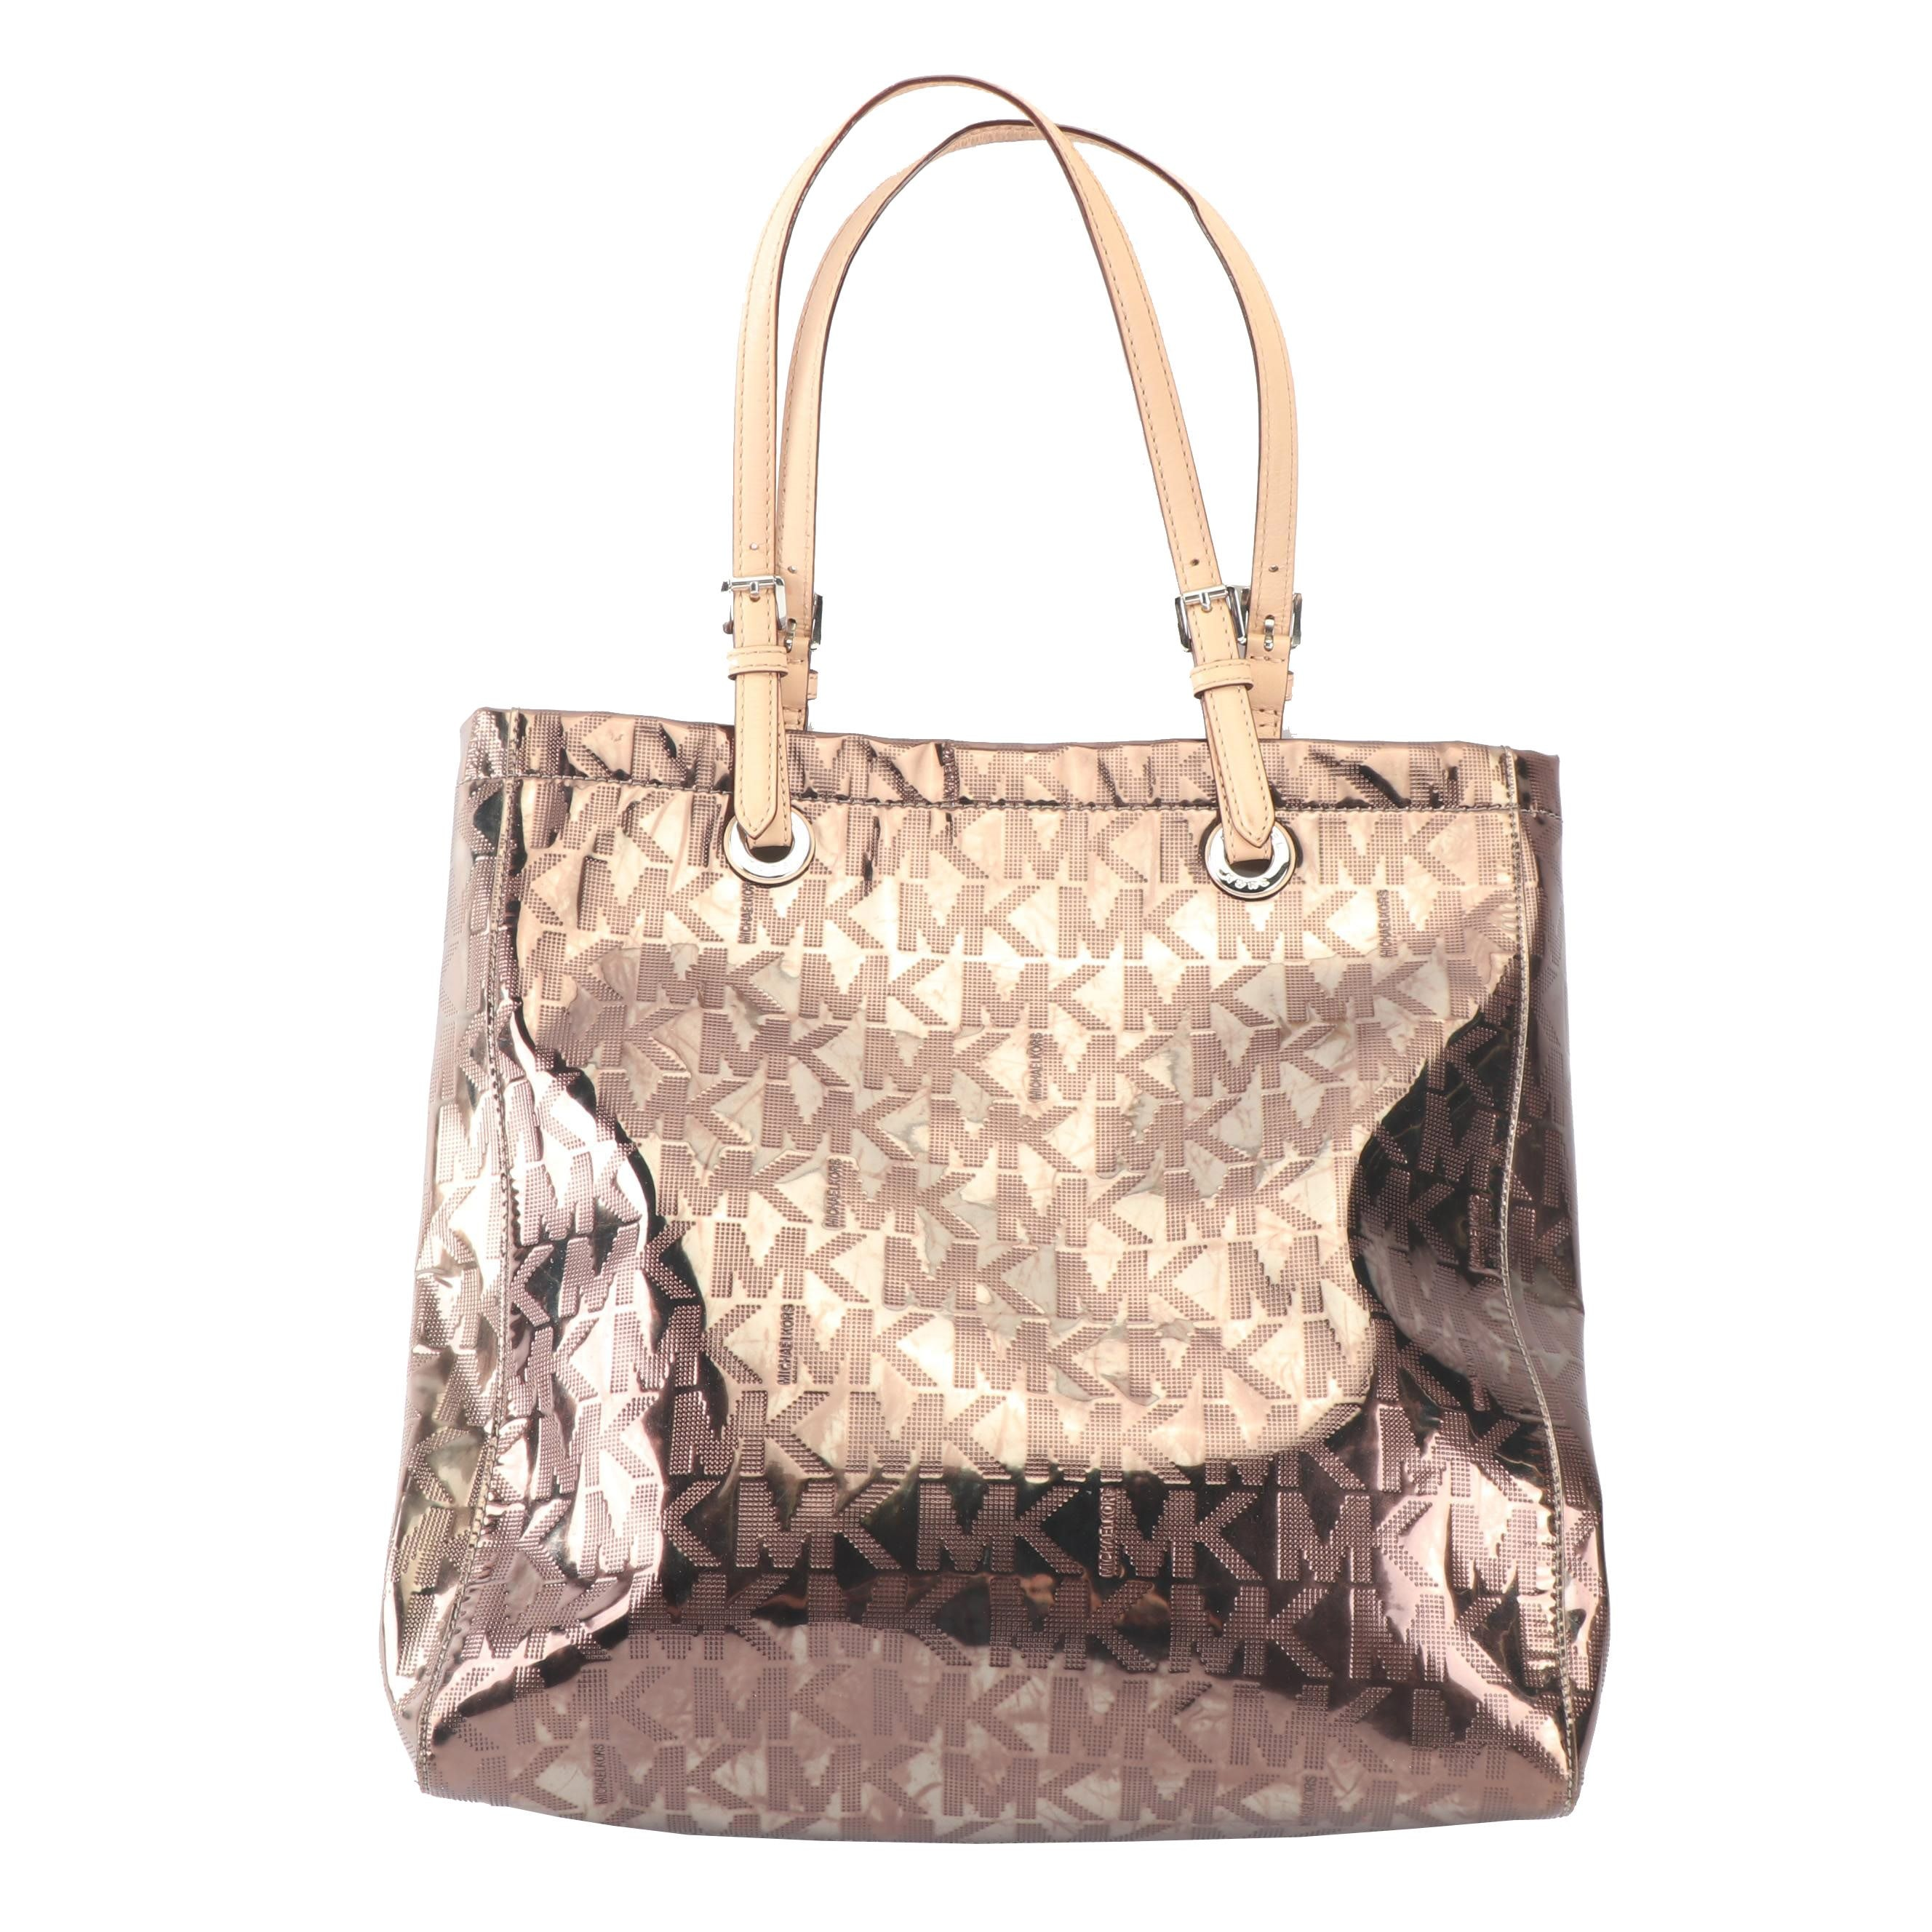 MICHAEL Michael Kors Jet Set Mirror Metallic Tote Bag